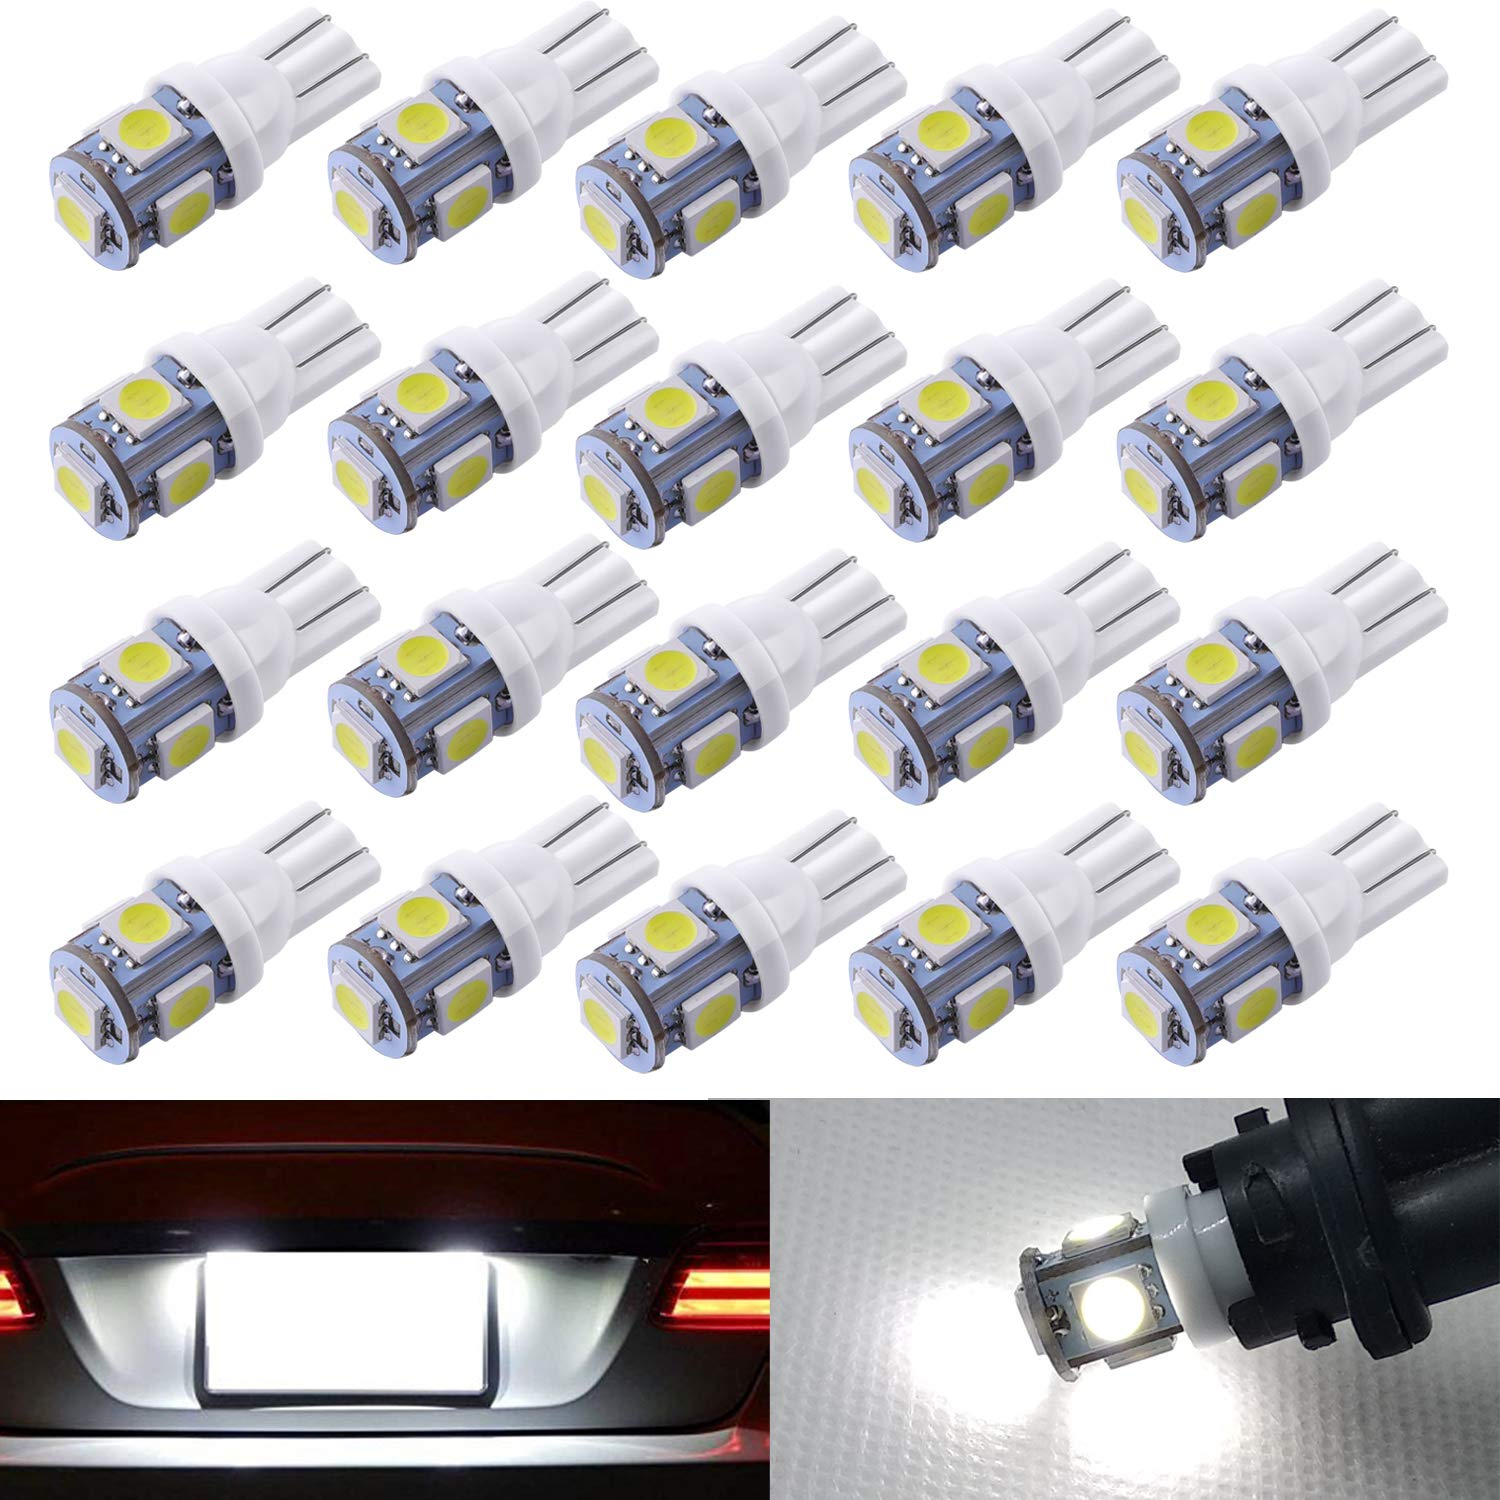 AOKEzl Extremely Bright 1156 1141 BA15S 7506 54-SMD 3014 LED Bulbs for Car Interior RV Camper 6000K Xenon White Pack of 20